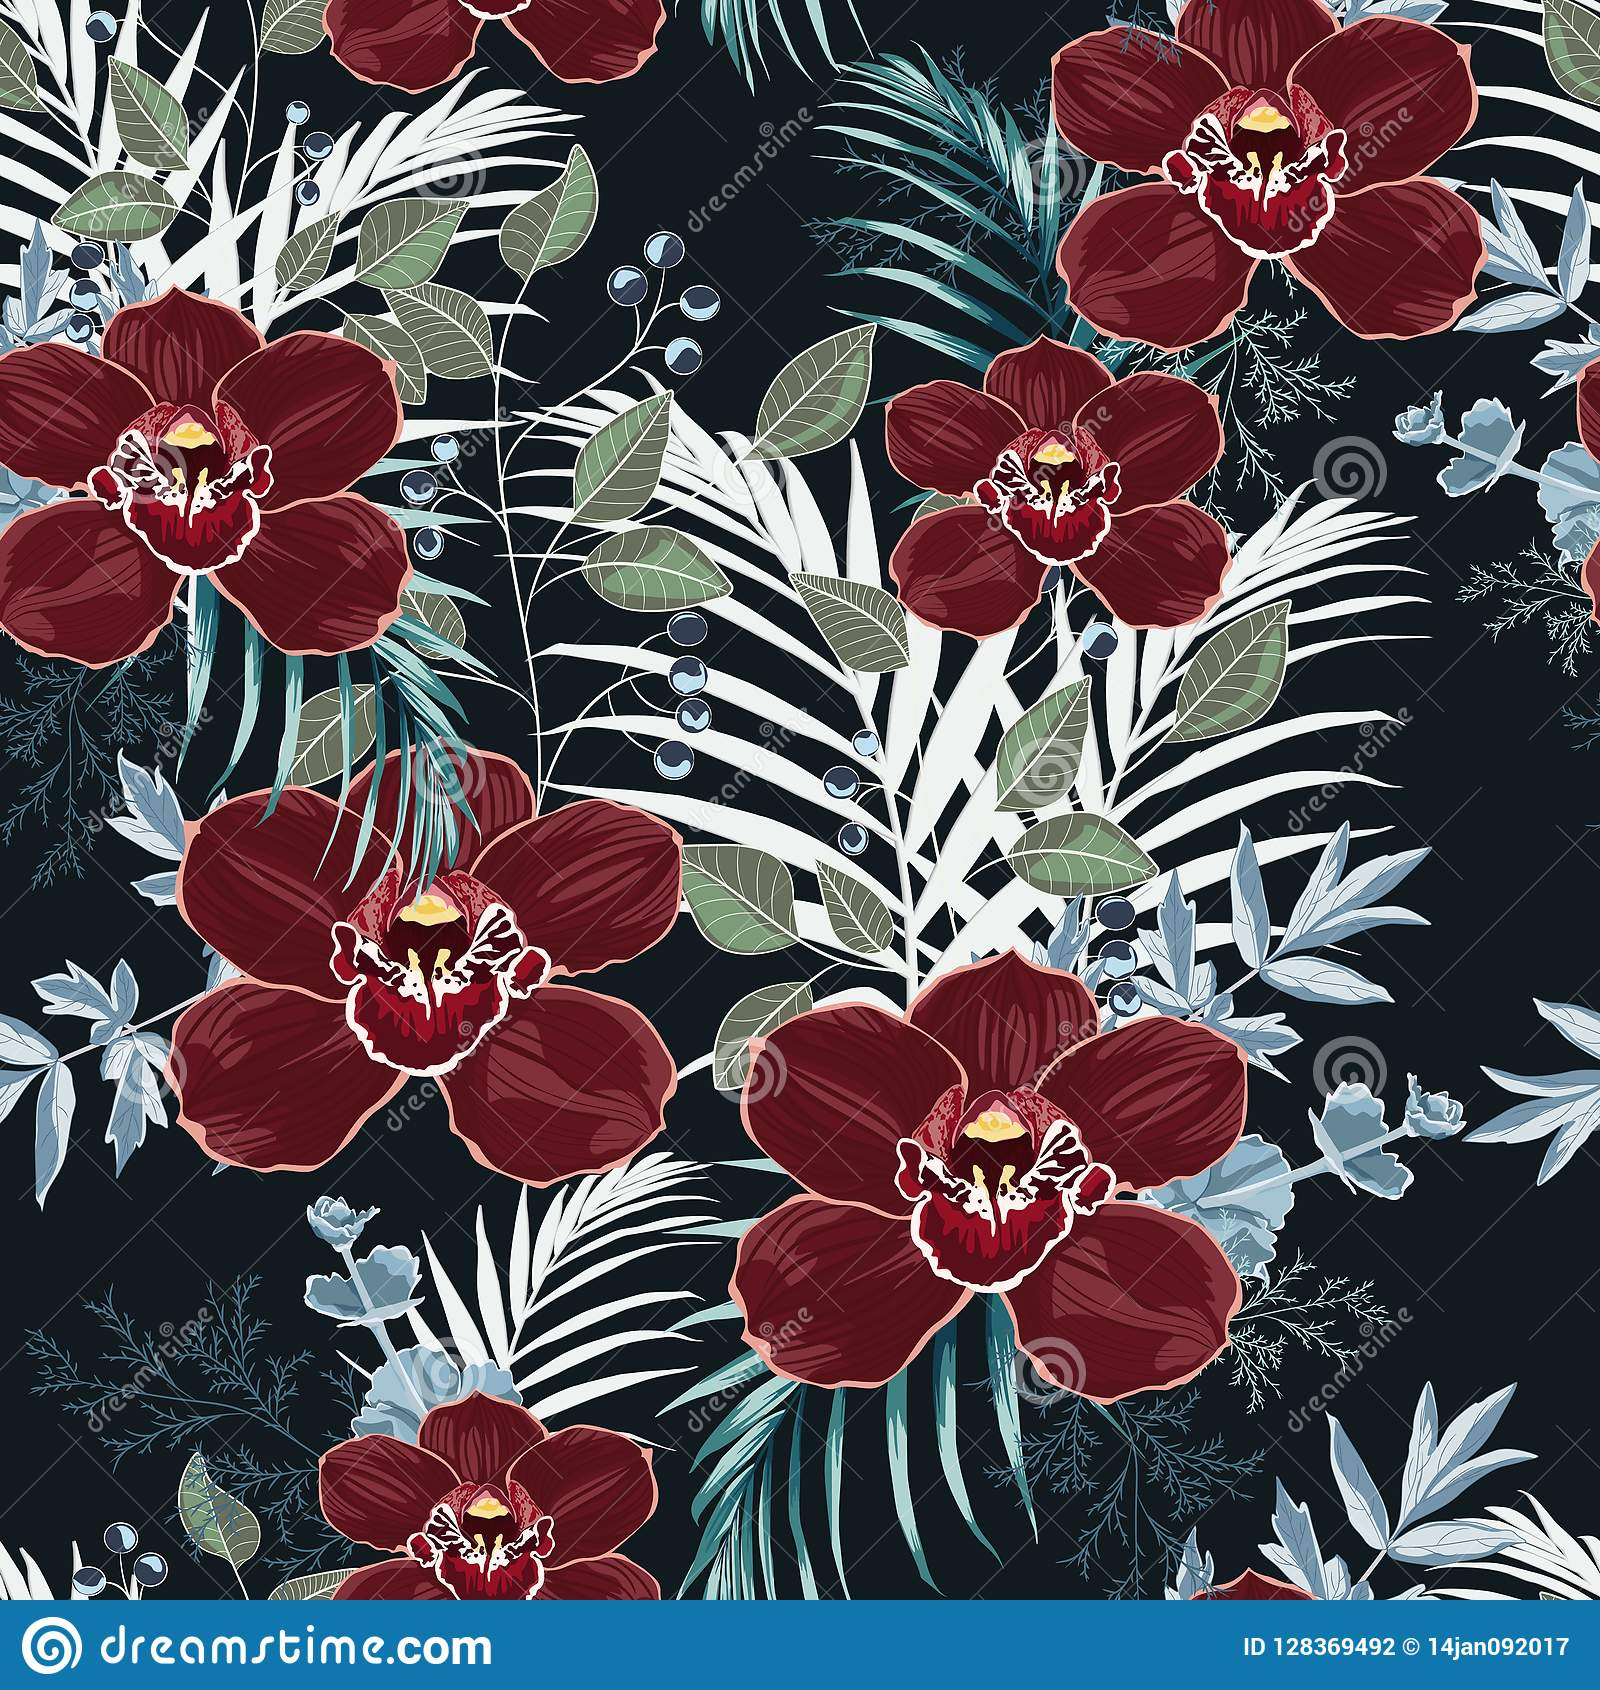 Burgundy orchid, herbs, berries, palm leaves and greenery seamless pattern.